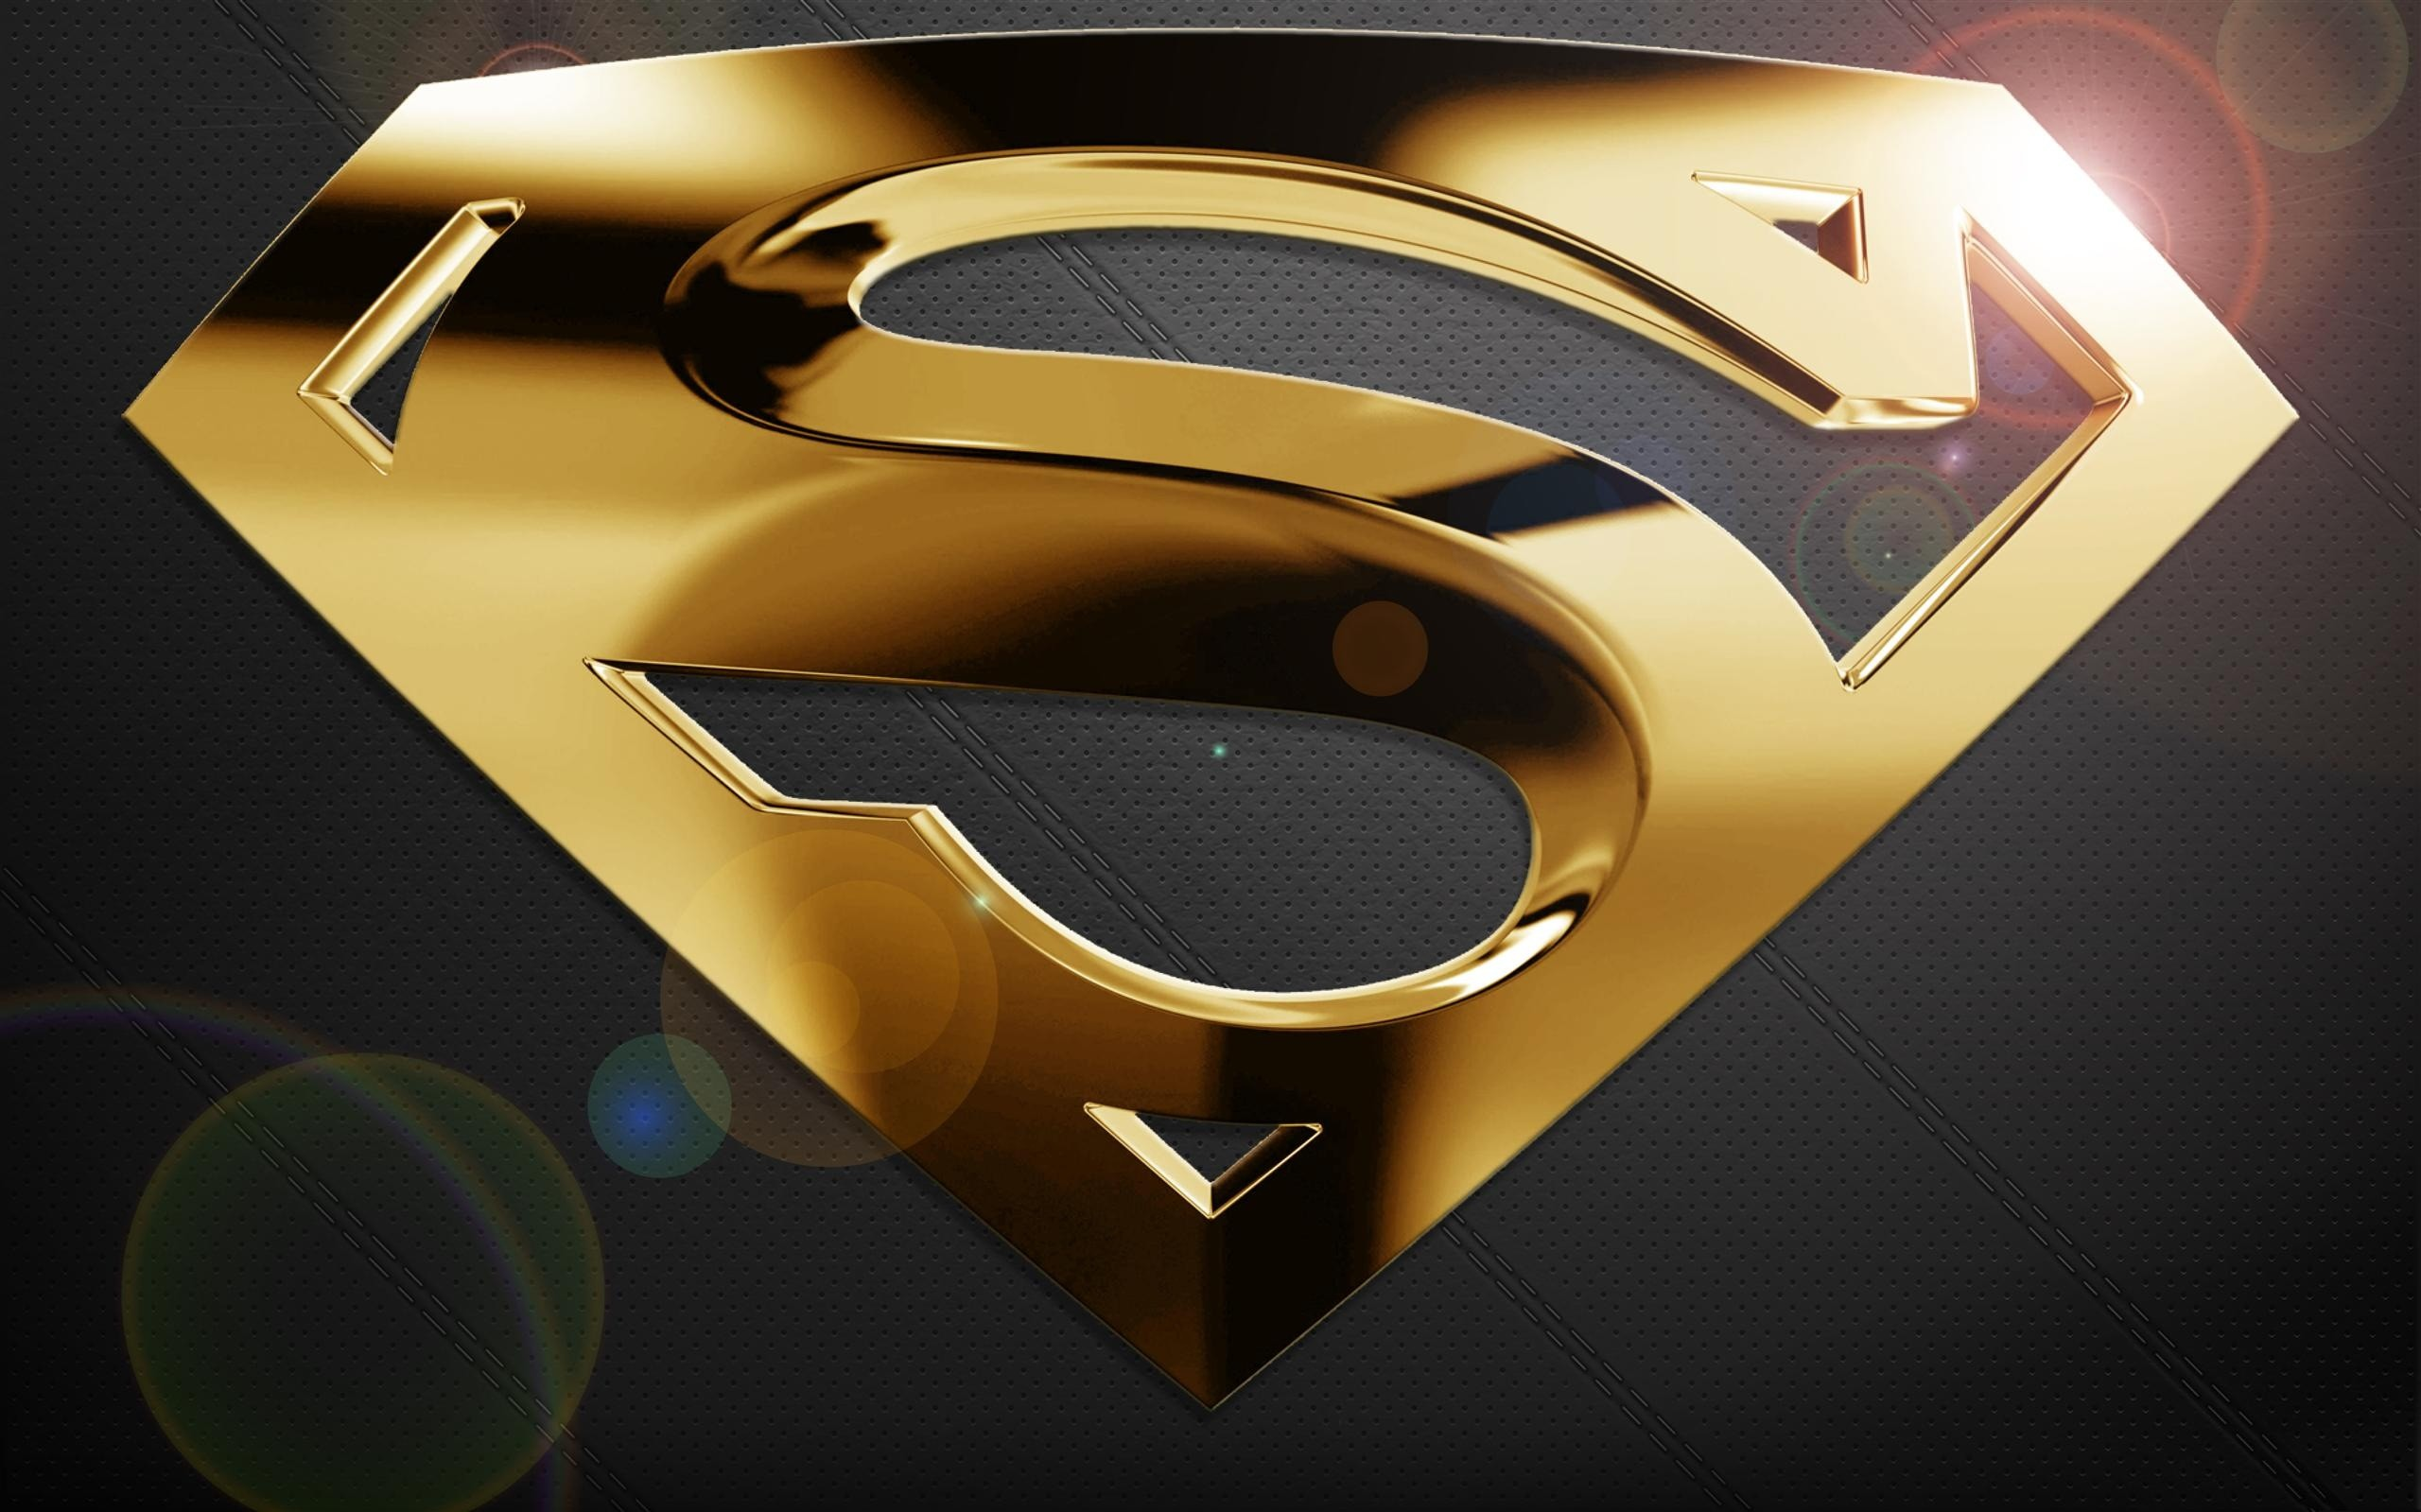 2560x1599 Free Superman HD Wallpapers. blue batman logo wallpaper superman 3d.